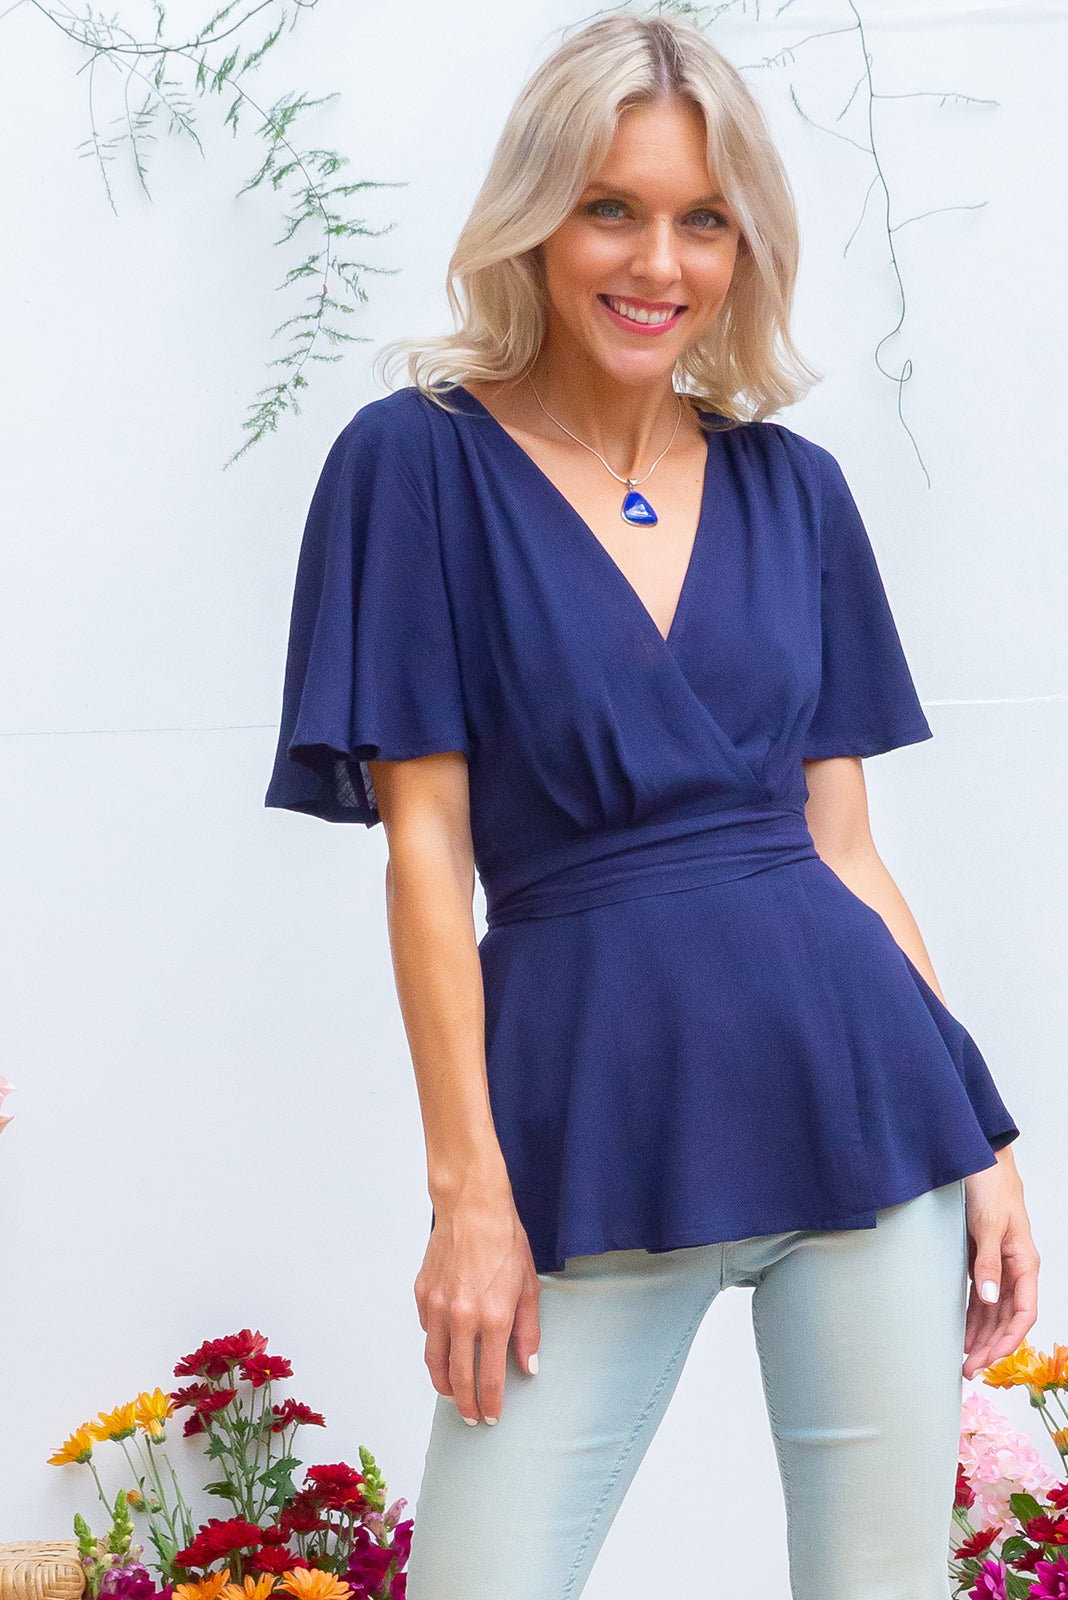 Delta Space Navy Wrap Top with petal sleeves, flattering wrap around in bright navy blue linen look fabric, breastfeeding and plus size suitable